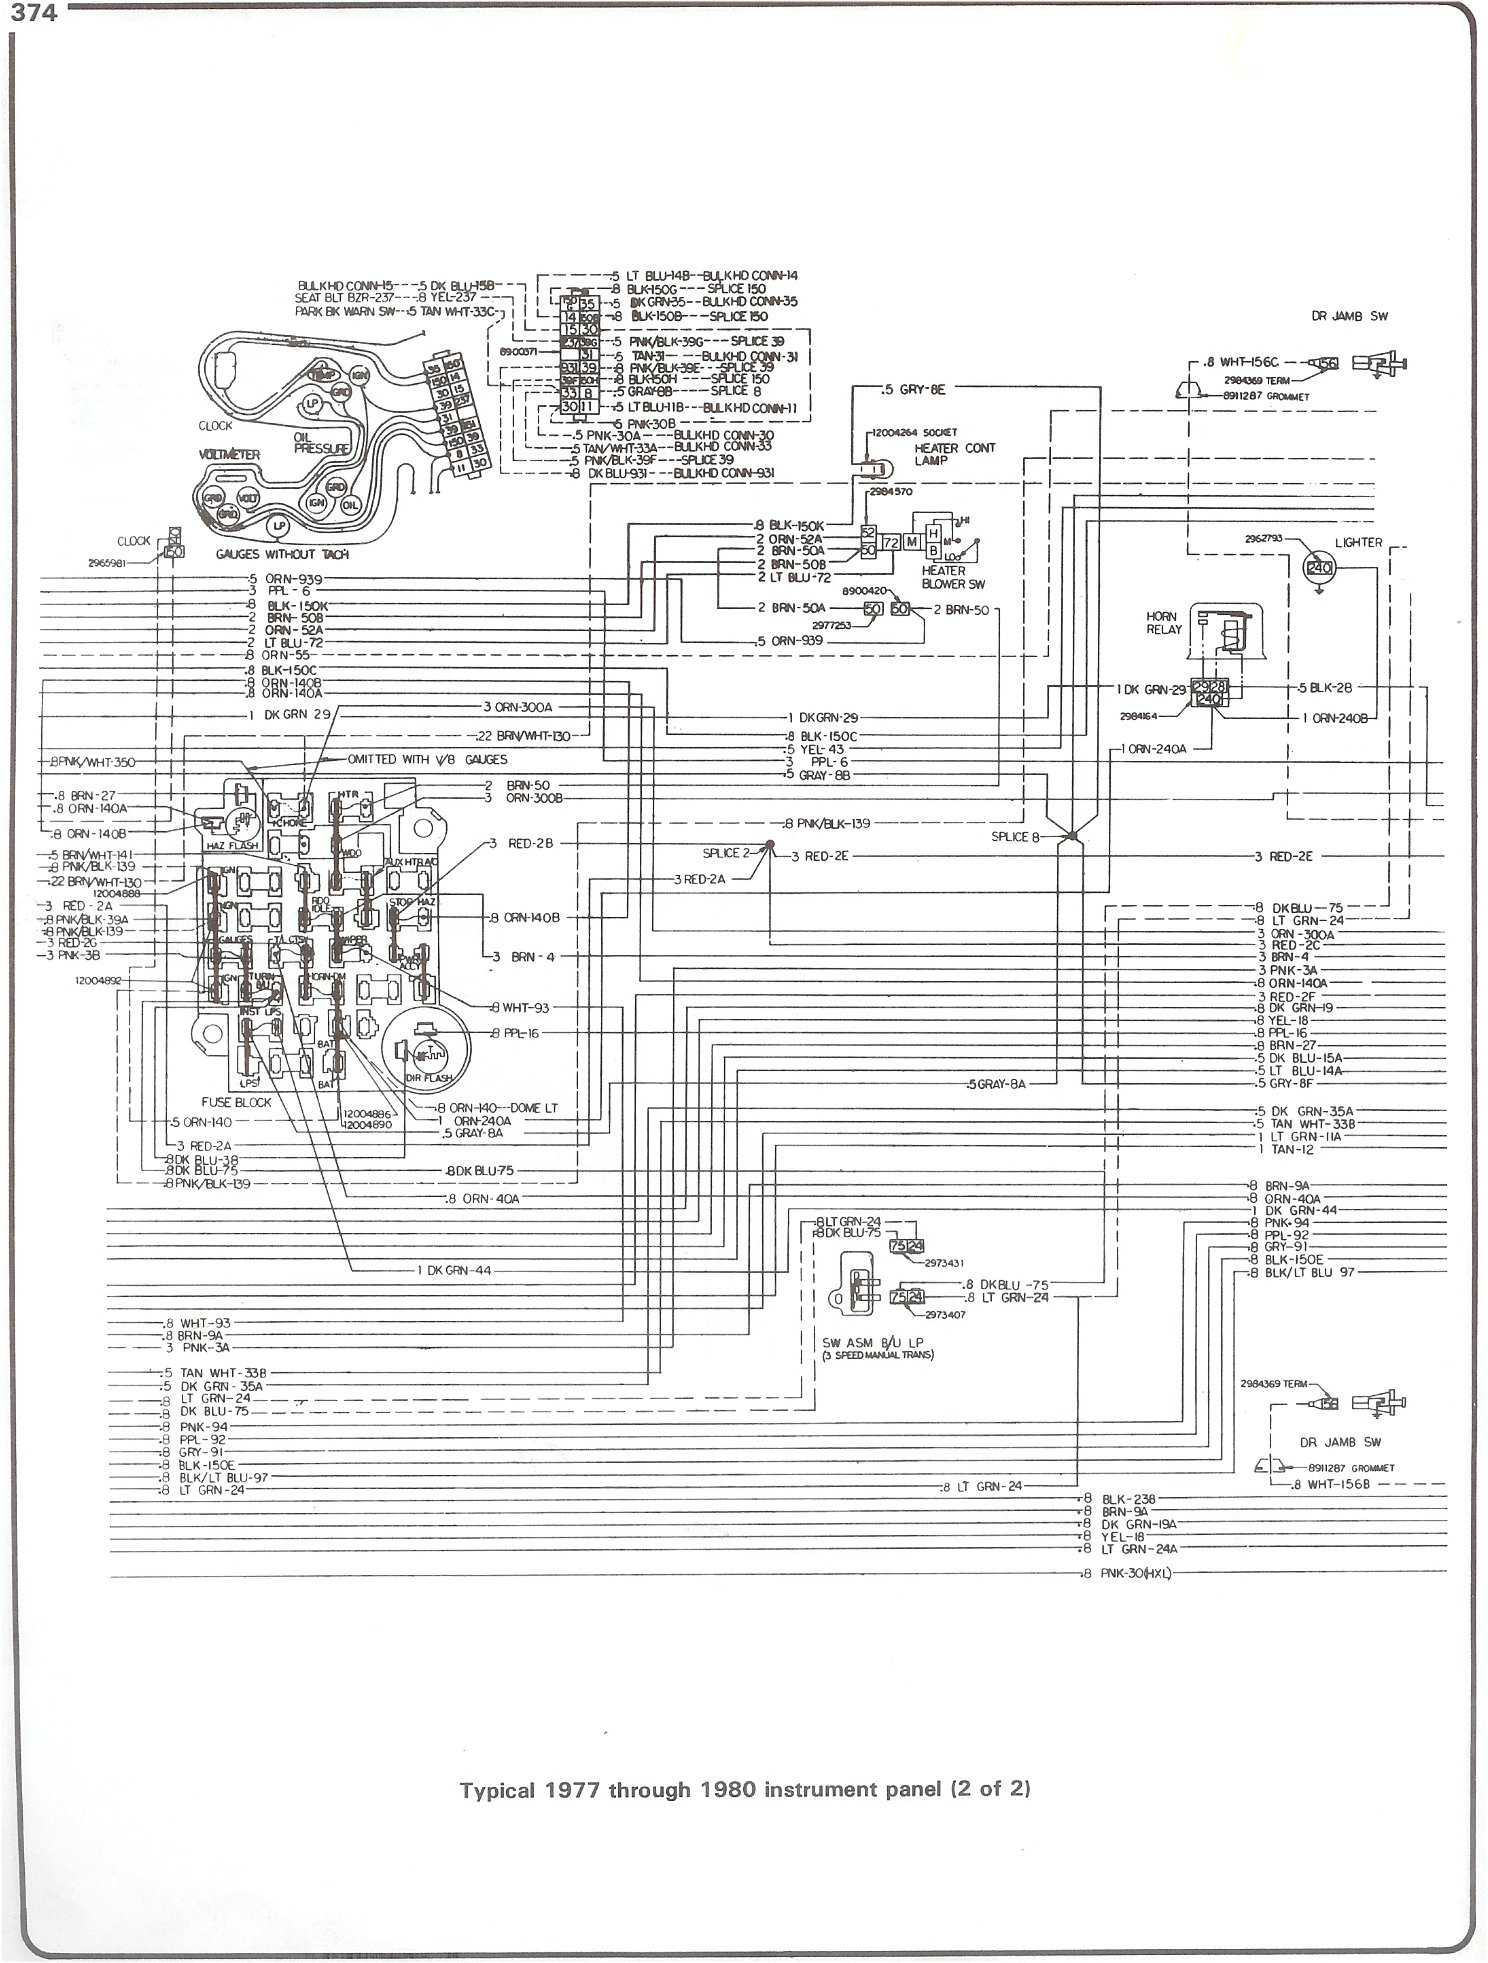 Gm 350 Engine Harness Diagram Wiring Library Light 77 80 Intrument Panel Page 2 Complete 73 87 Diagrams